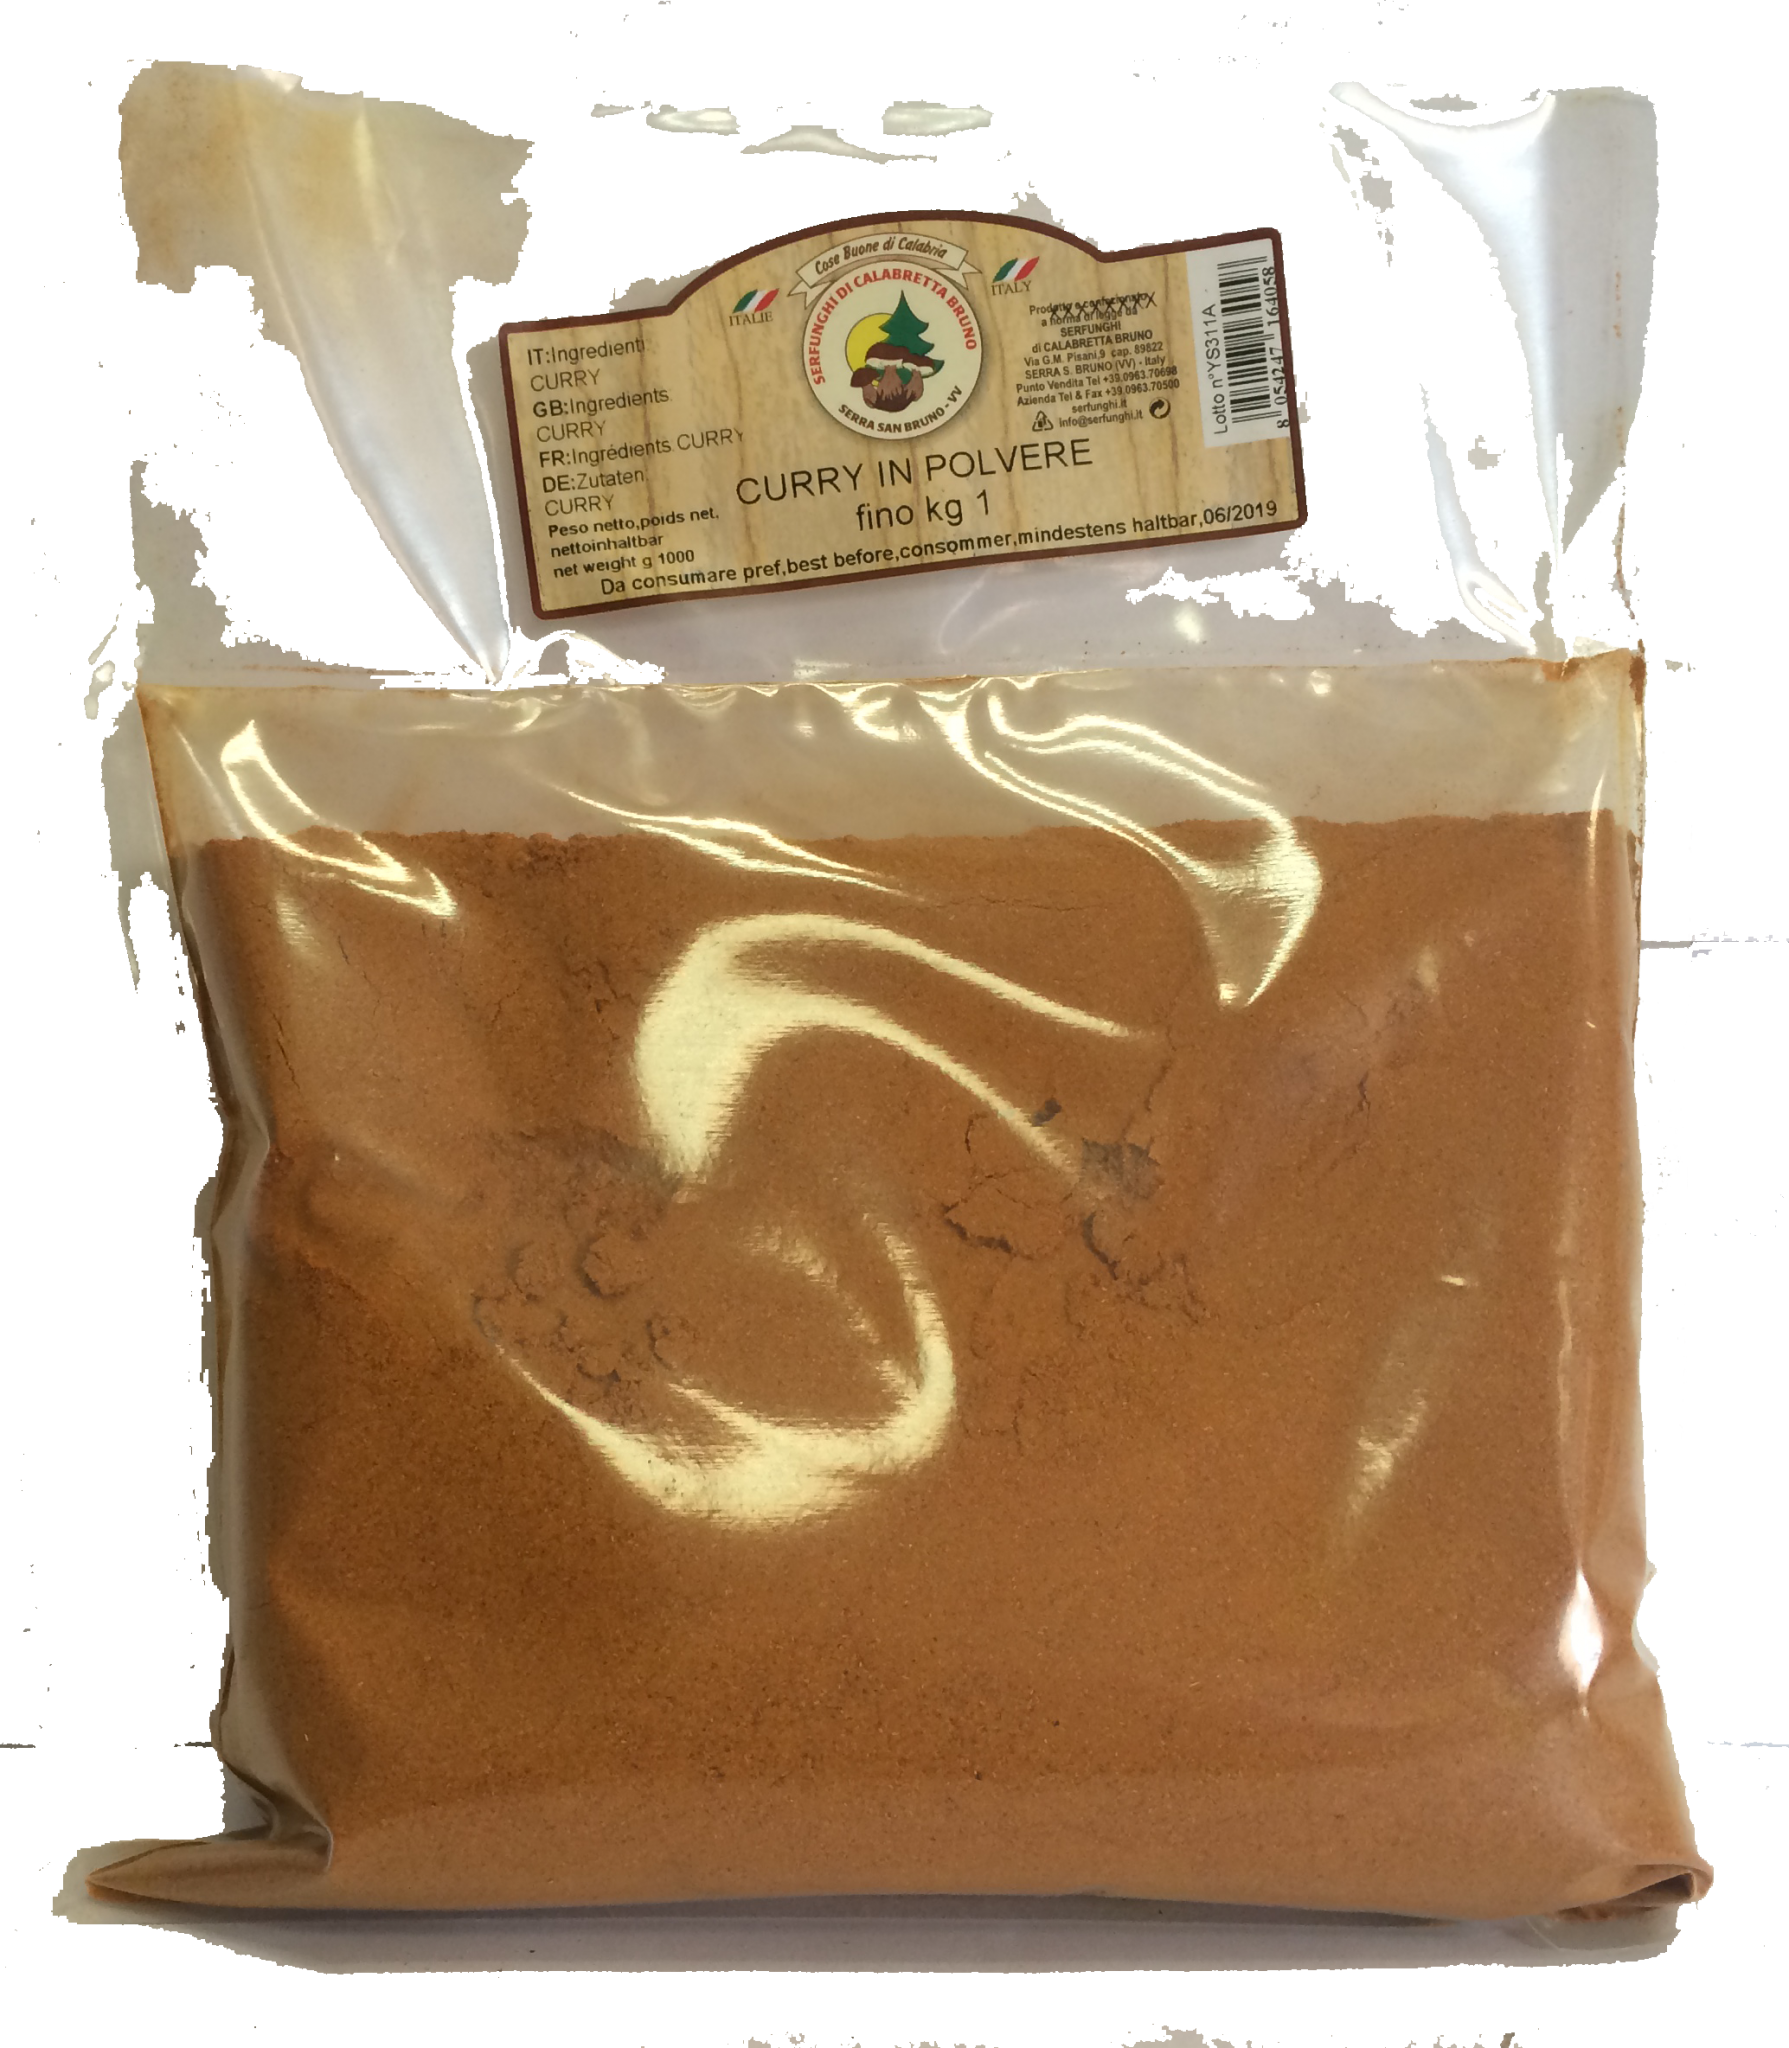 Ittrade - Curry 1 kg - Asia